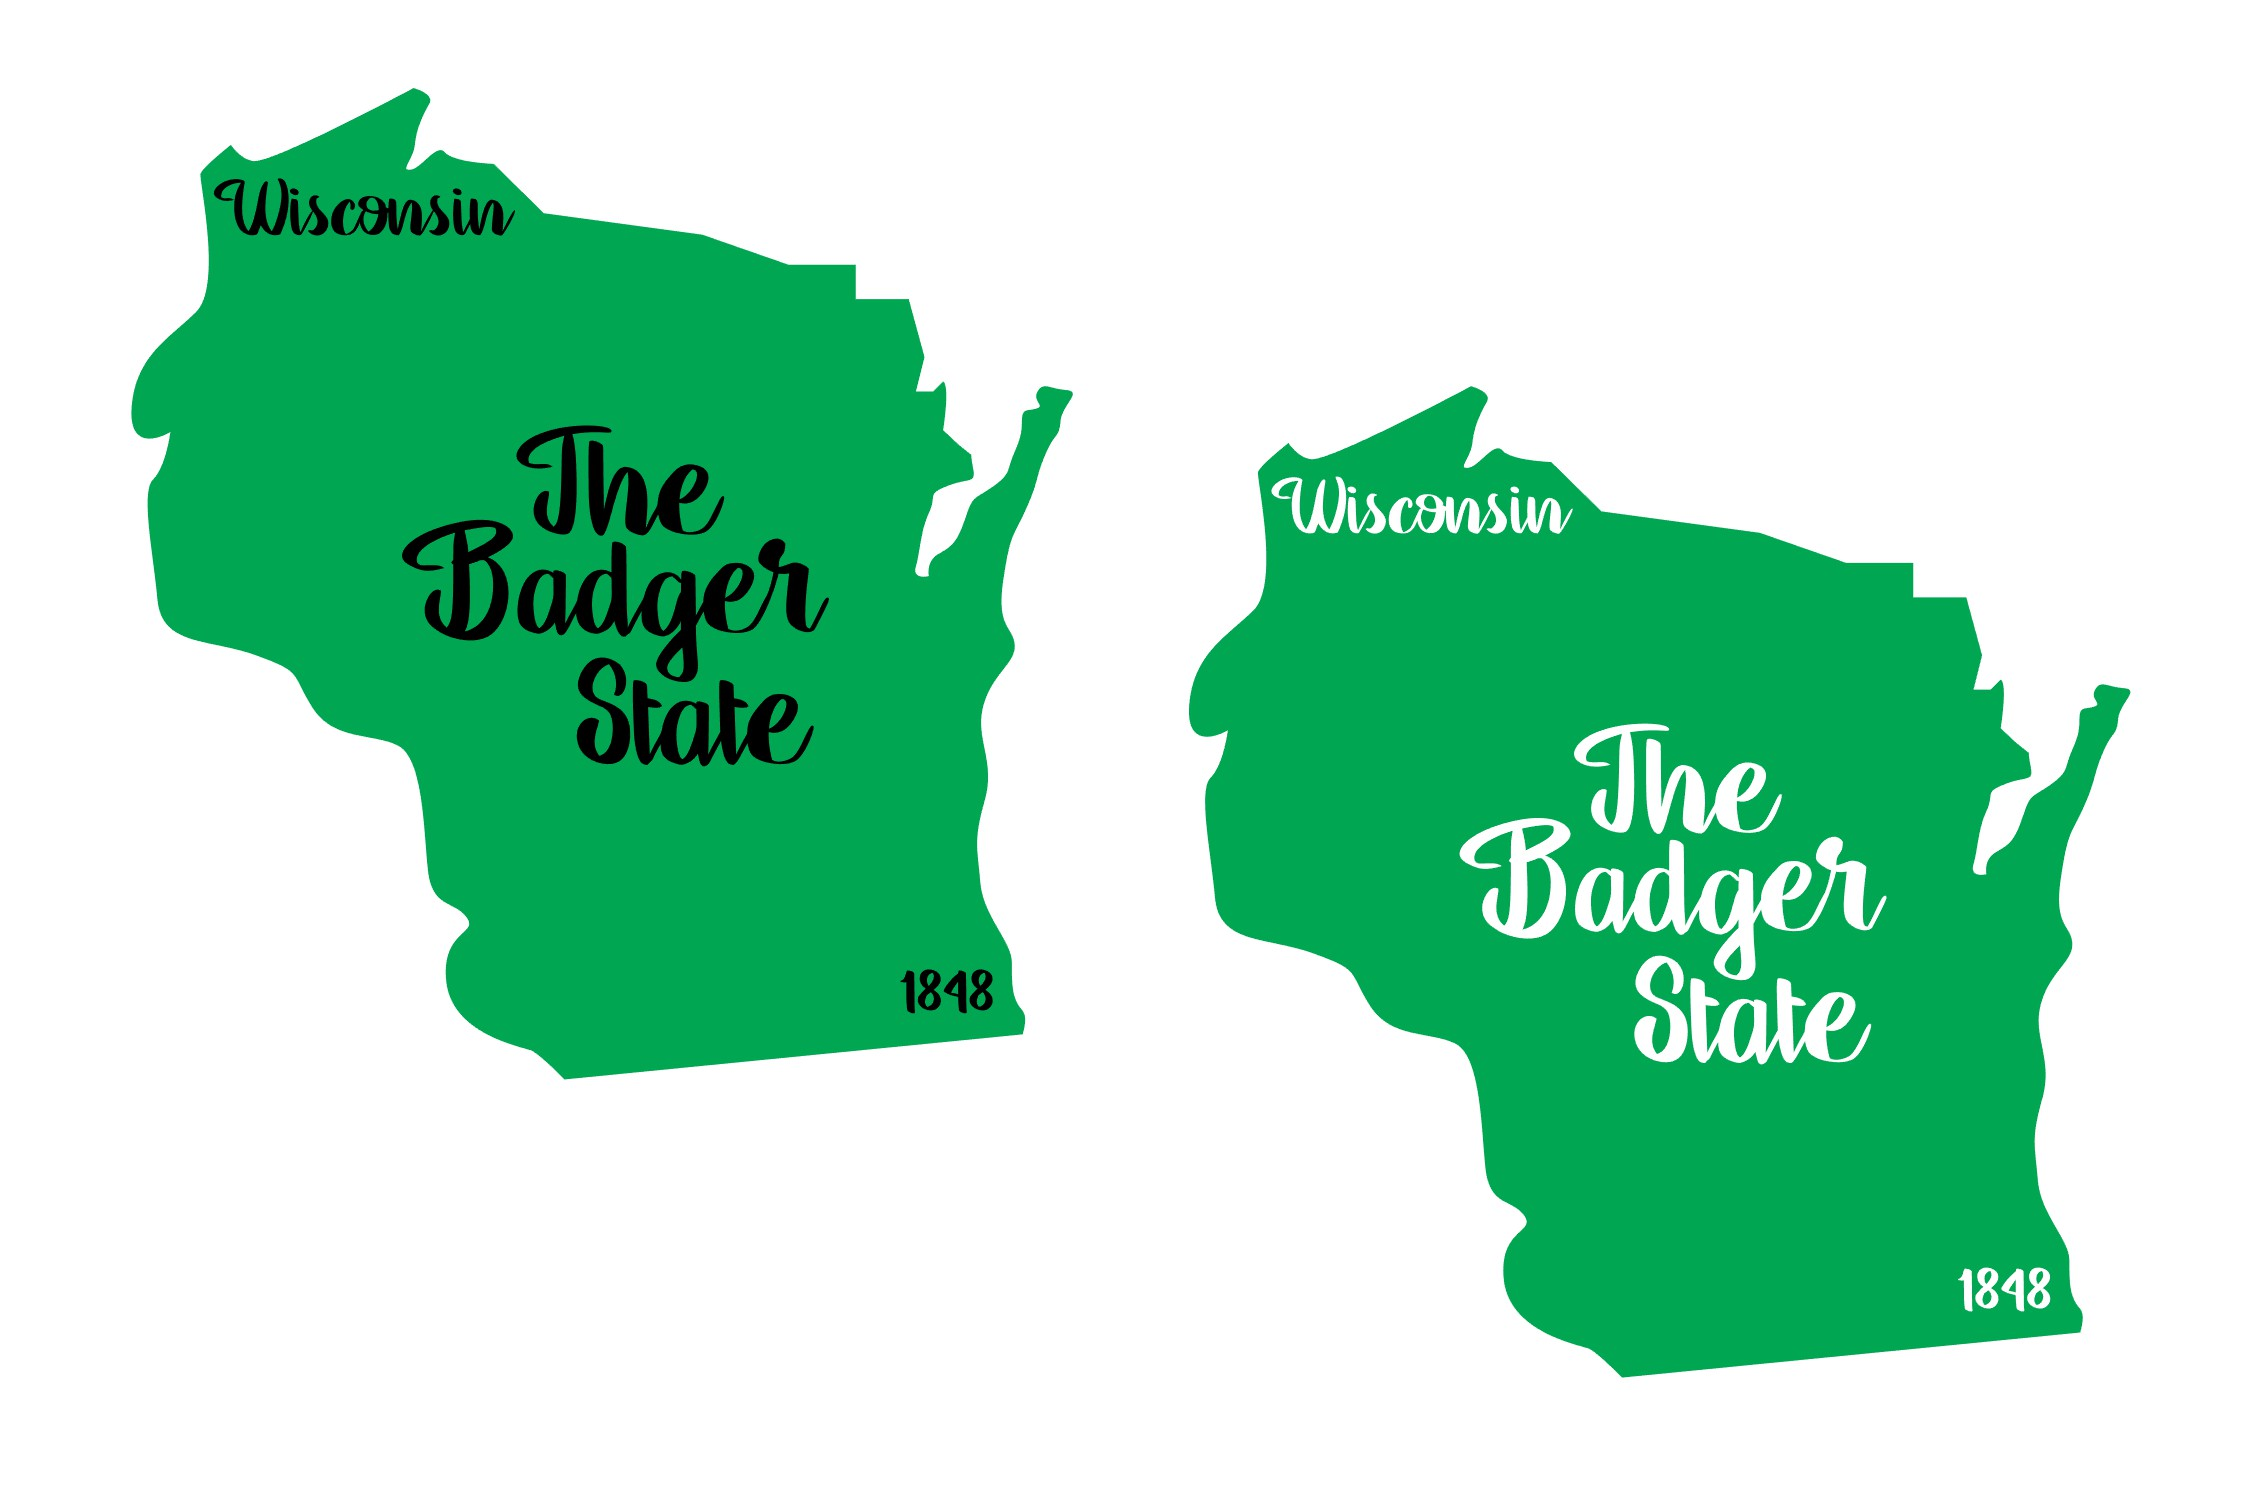 Wisconsin - State Nickname & EST Year - 2 Files - SVG PNG example image 2